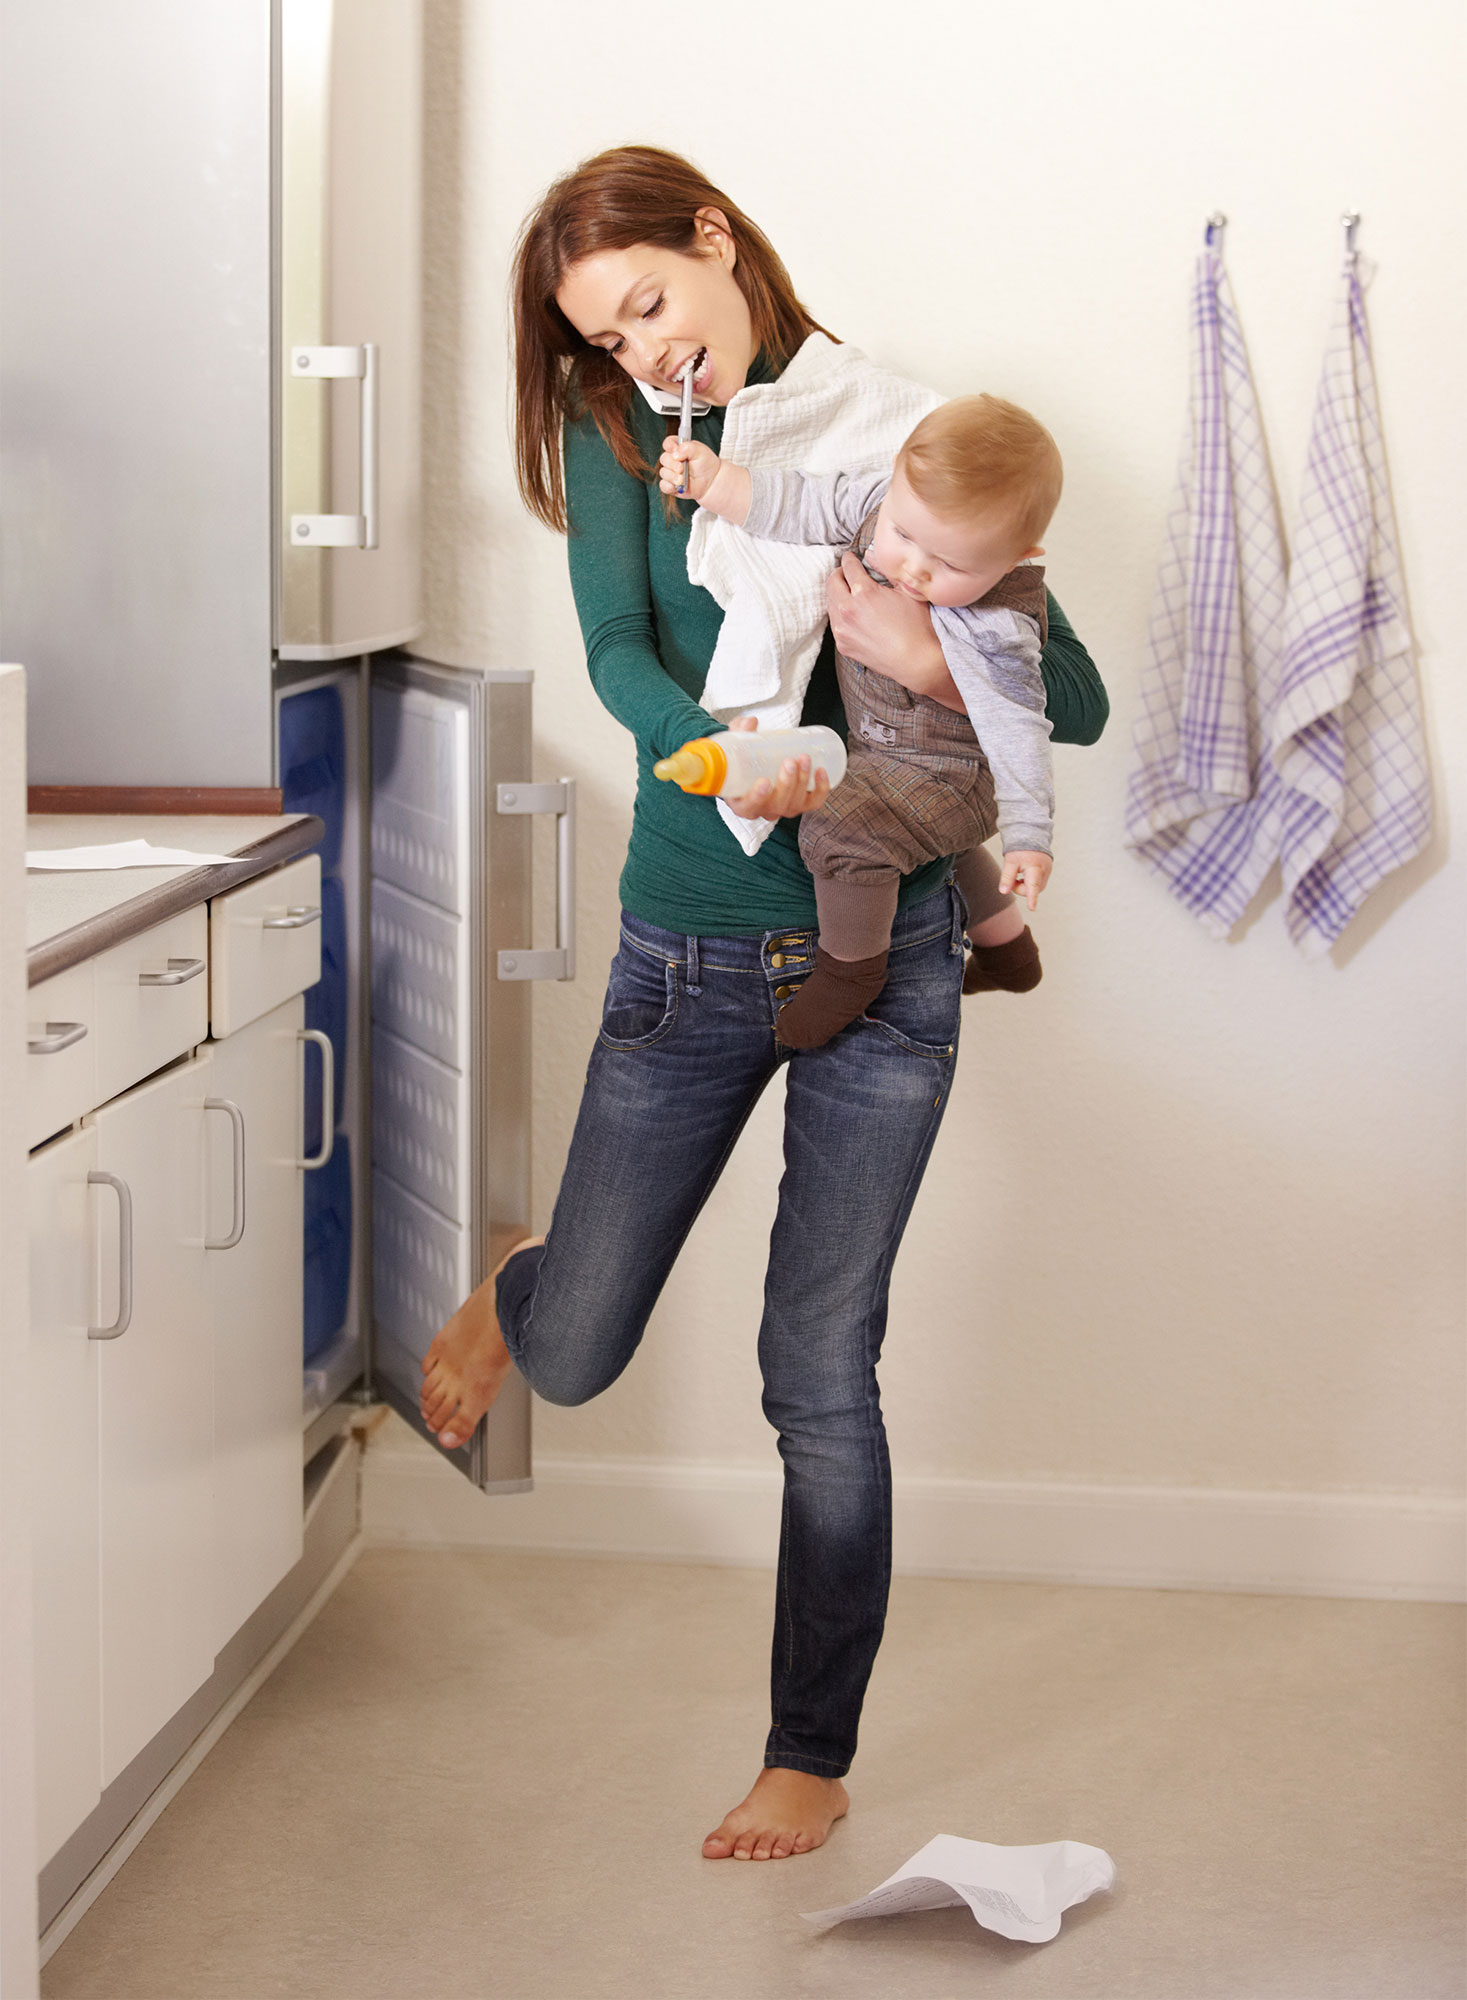 Being mom is a balancing act!